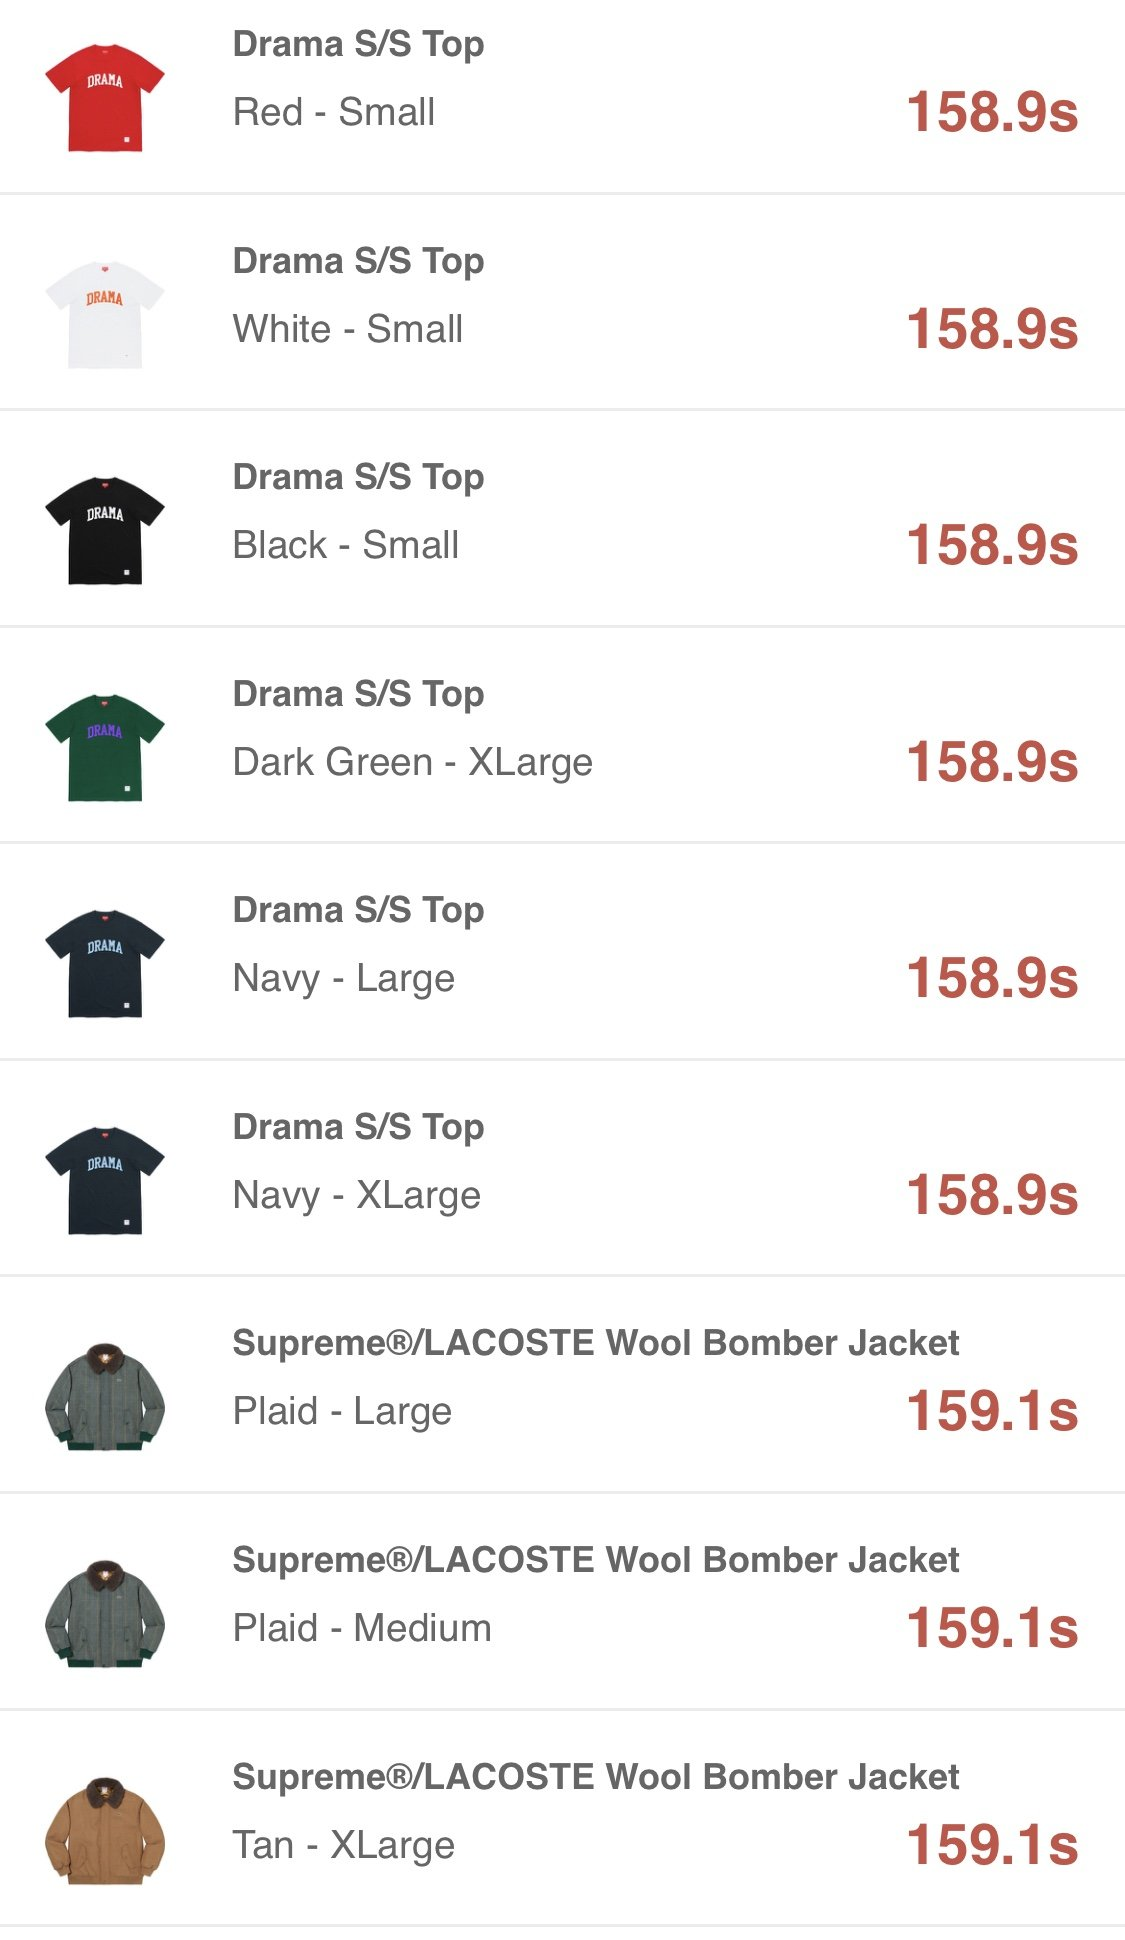 supreme-online-store-19aw-19fw-20190928-week5-release-items-us-sold-out-time